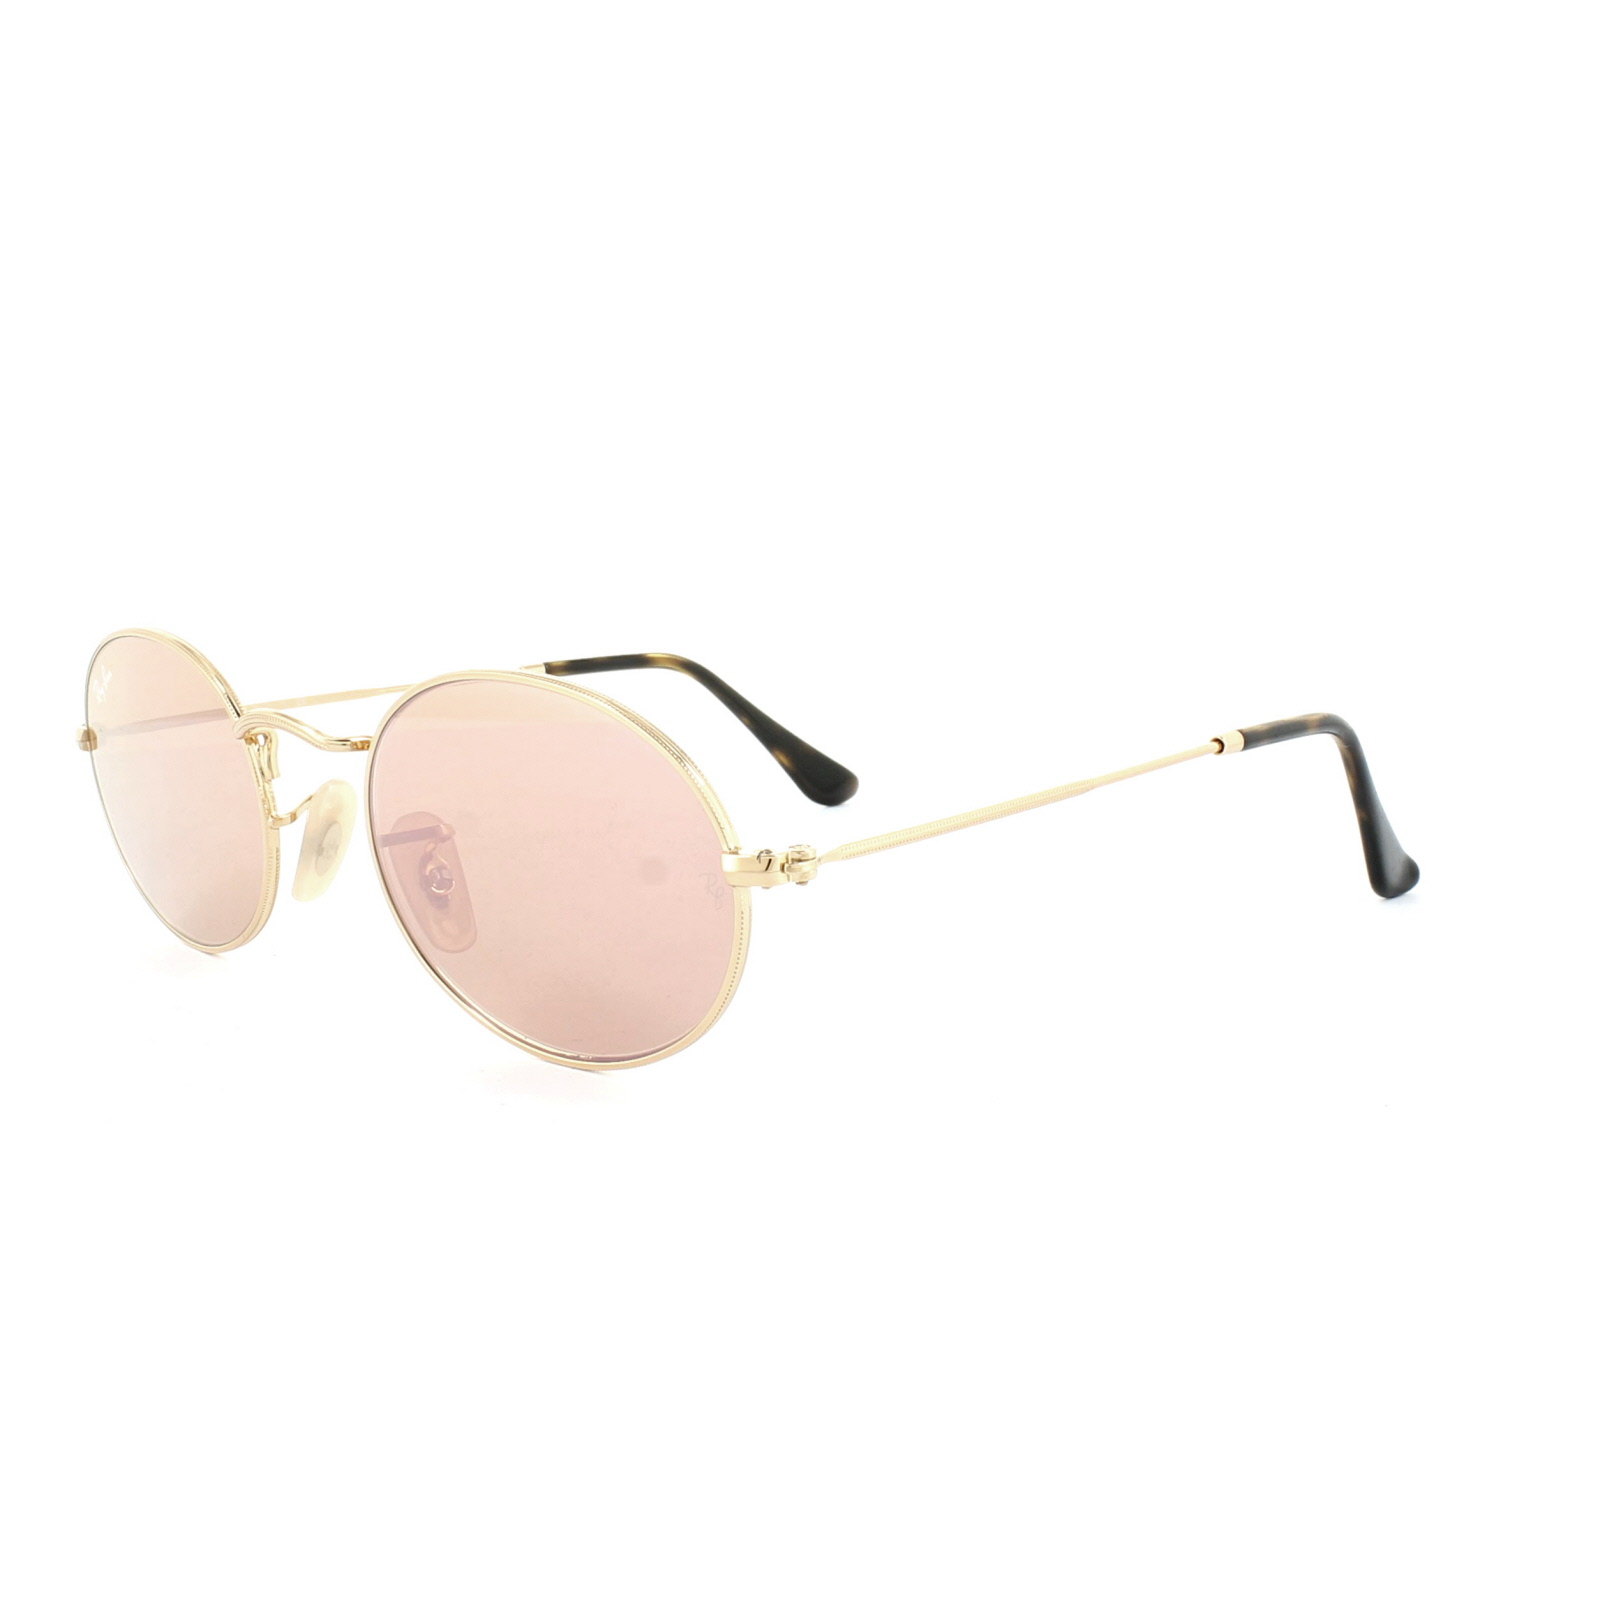 8b257939226 Sentinel Ray-Ban Sunglasses 3547N 001 Z2 Gold Copper Mirror. Sentinel  Thumbnail 2